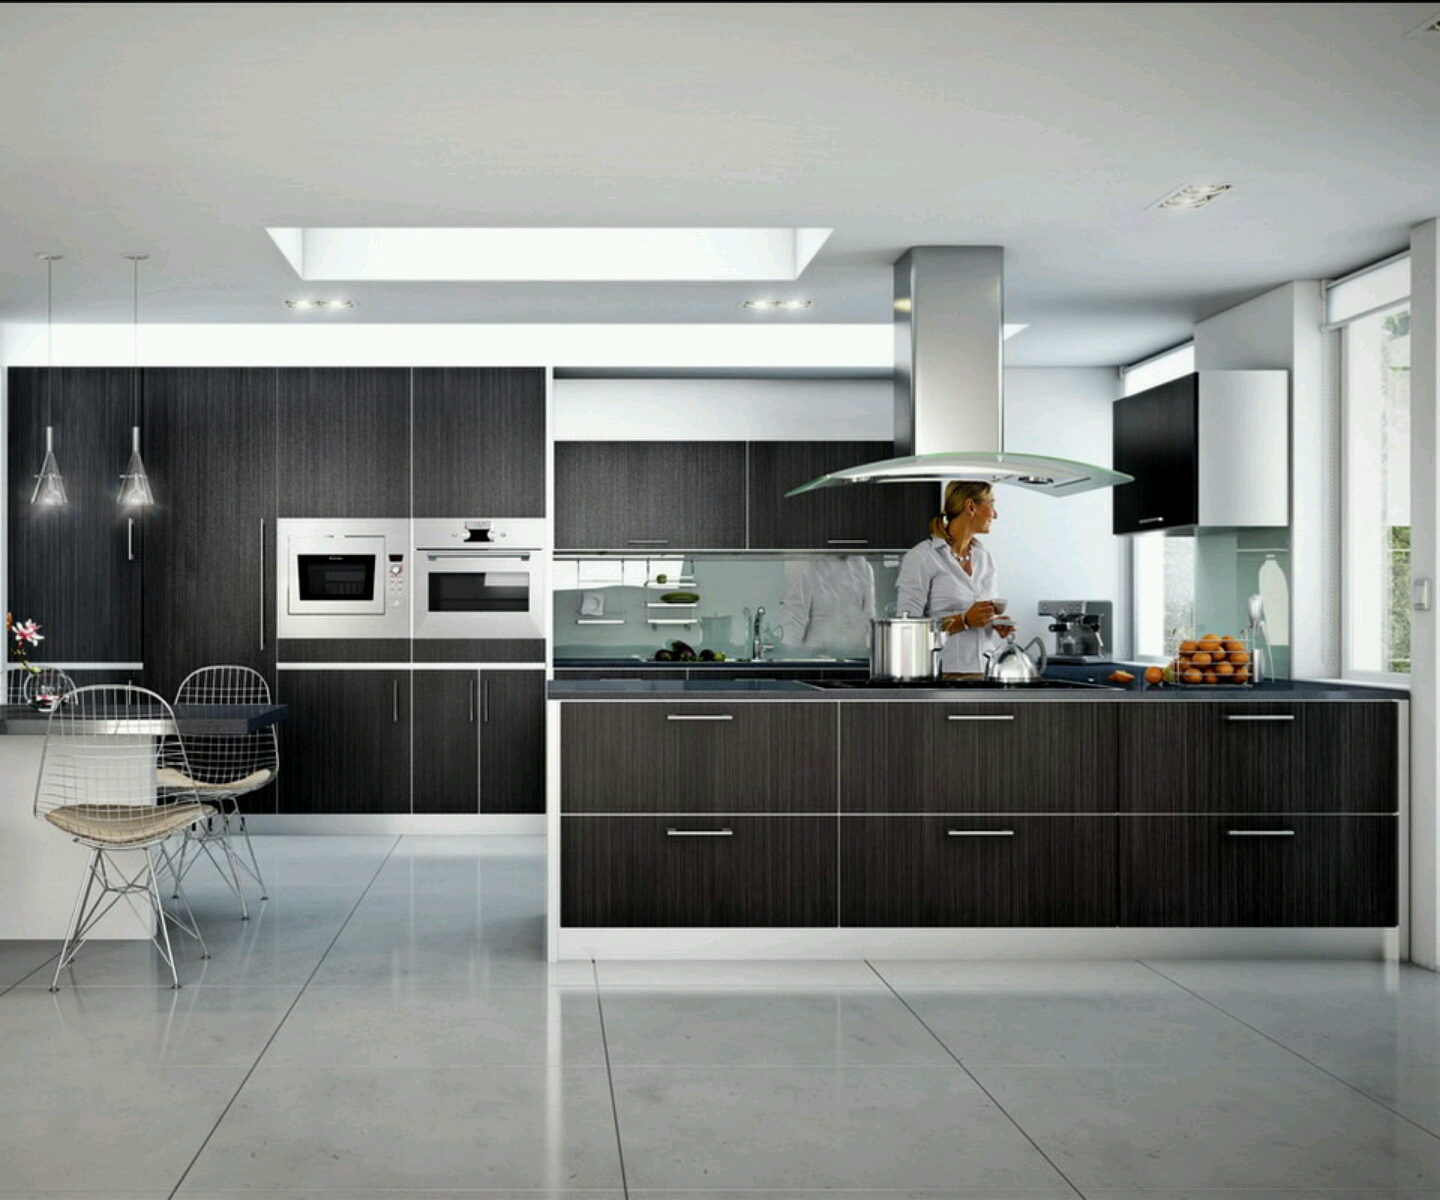 Rumah rumah minimalis modern homes ultra modern kitchen for New kitchen design ideas